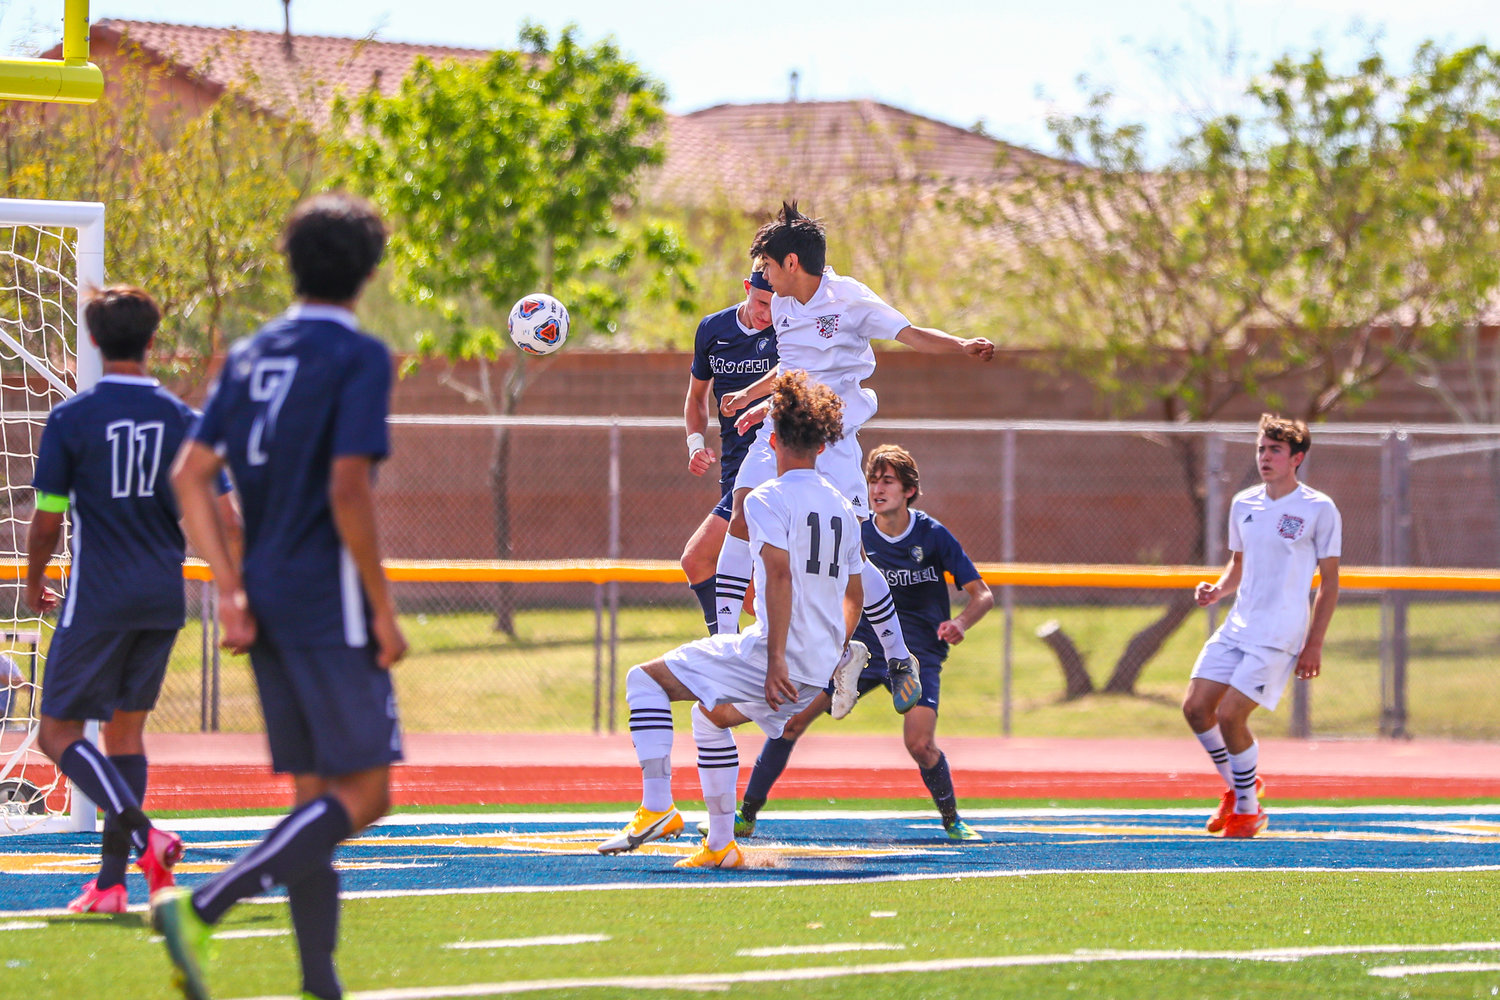 Ironwood junior midfielder Gabriel Ayala heads in the Eagles second goal of an 8-2 loss to Queen Creek Casteel in the 5A boys soccer final March 20 at Desert Vista High School in Phoenix.